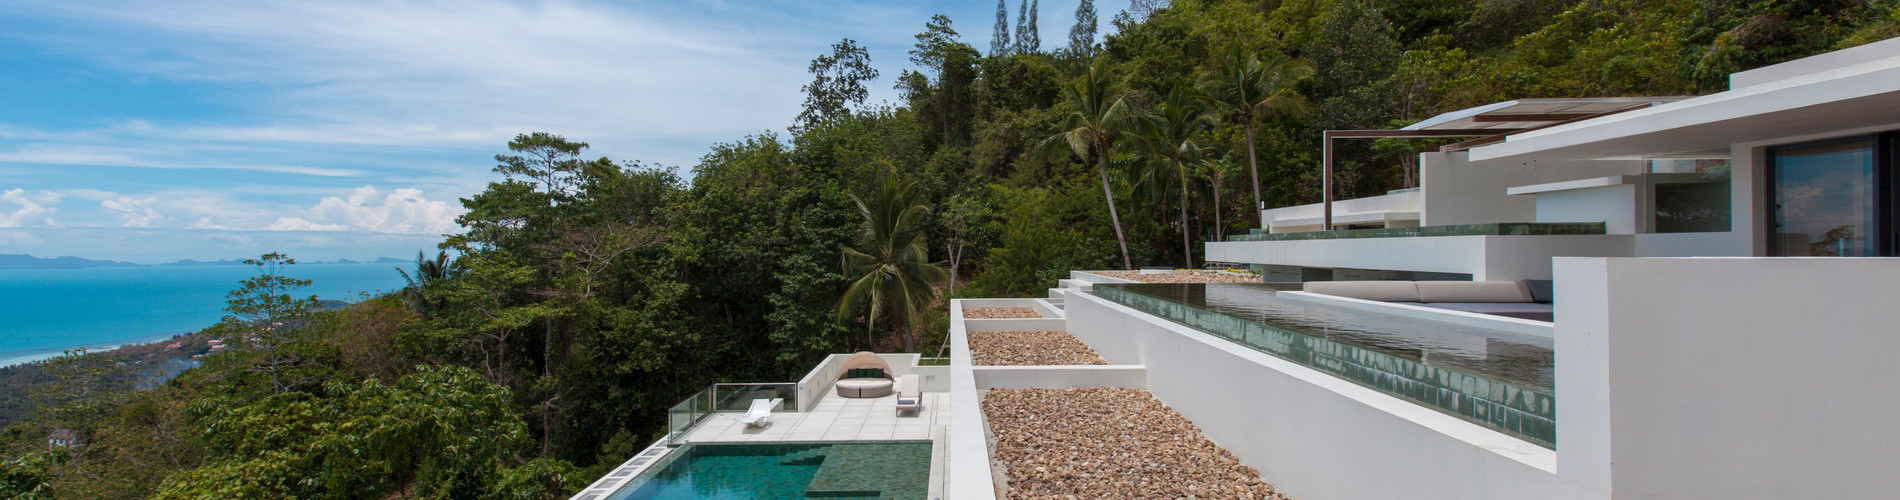 Vacation Rental Villa Zest At Lime Samui